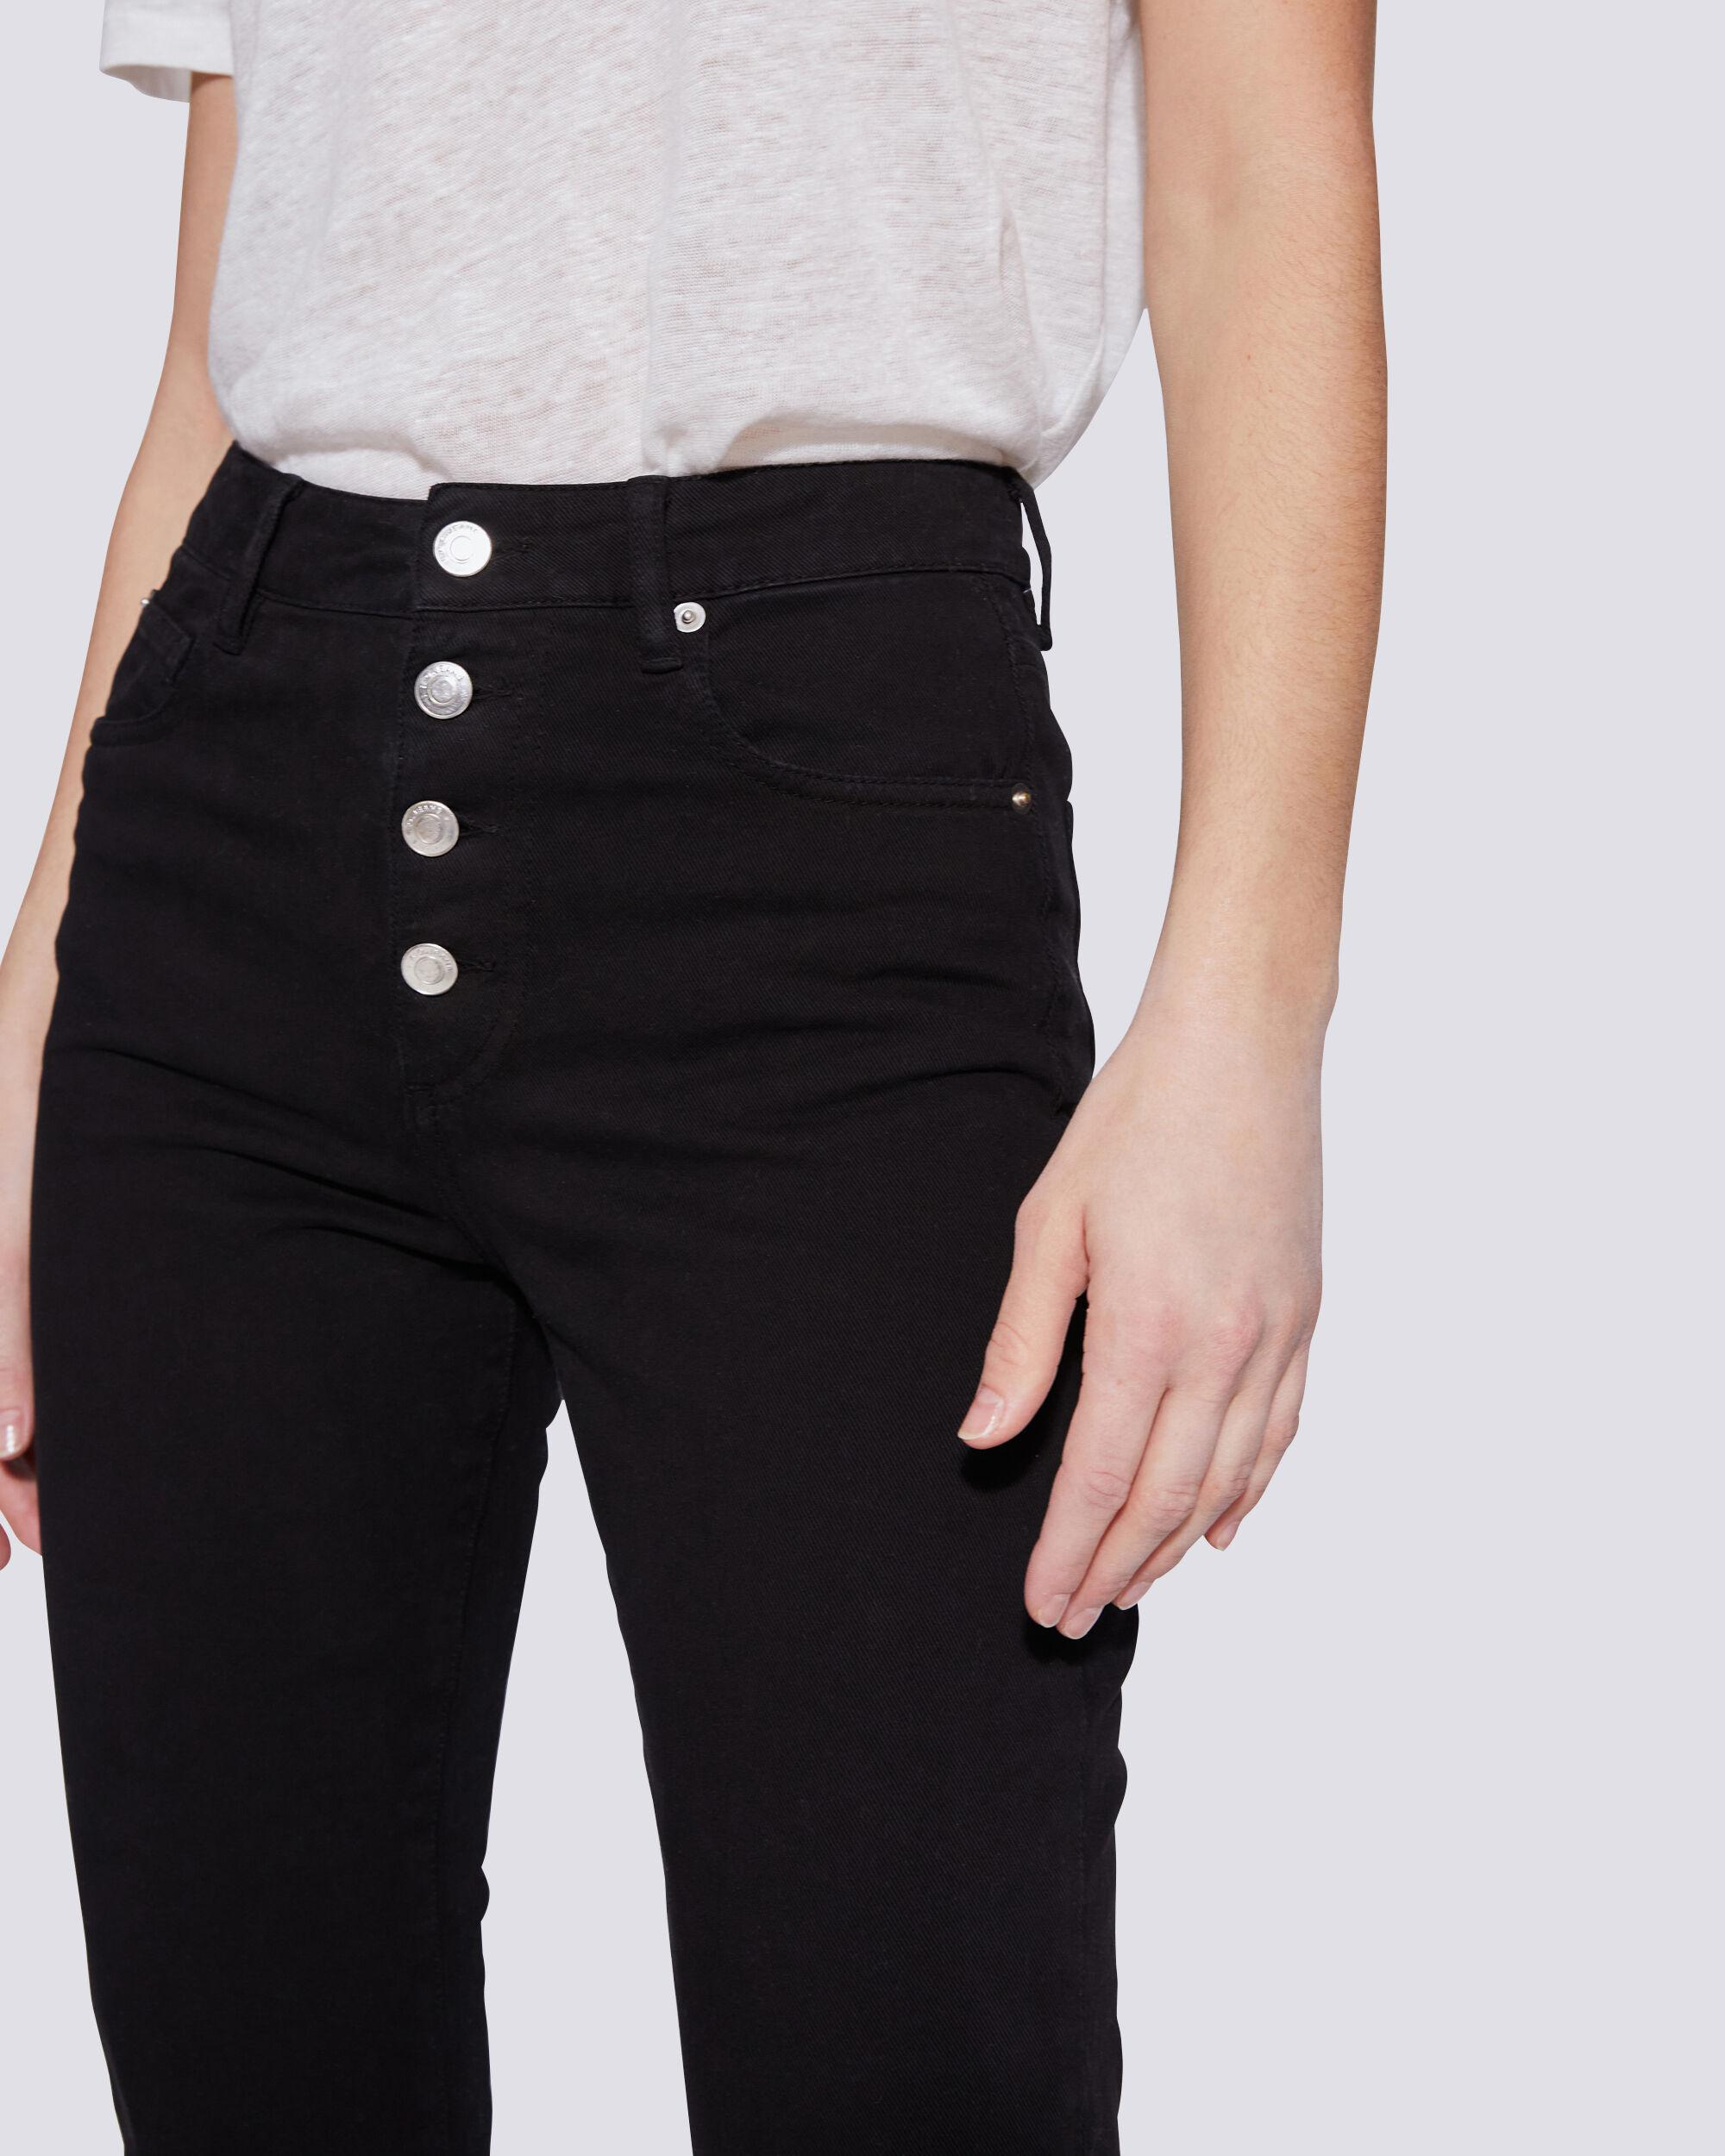 ESME HIGH RISE BUTTON FRONT CROPPED JEANS 3